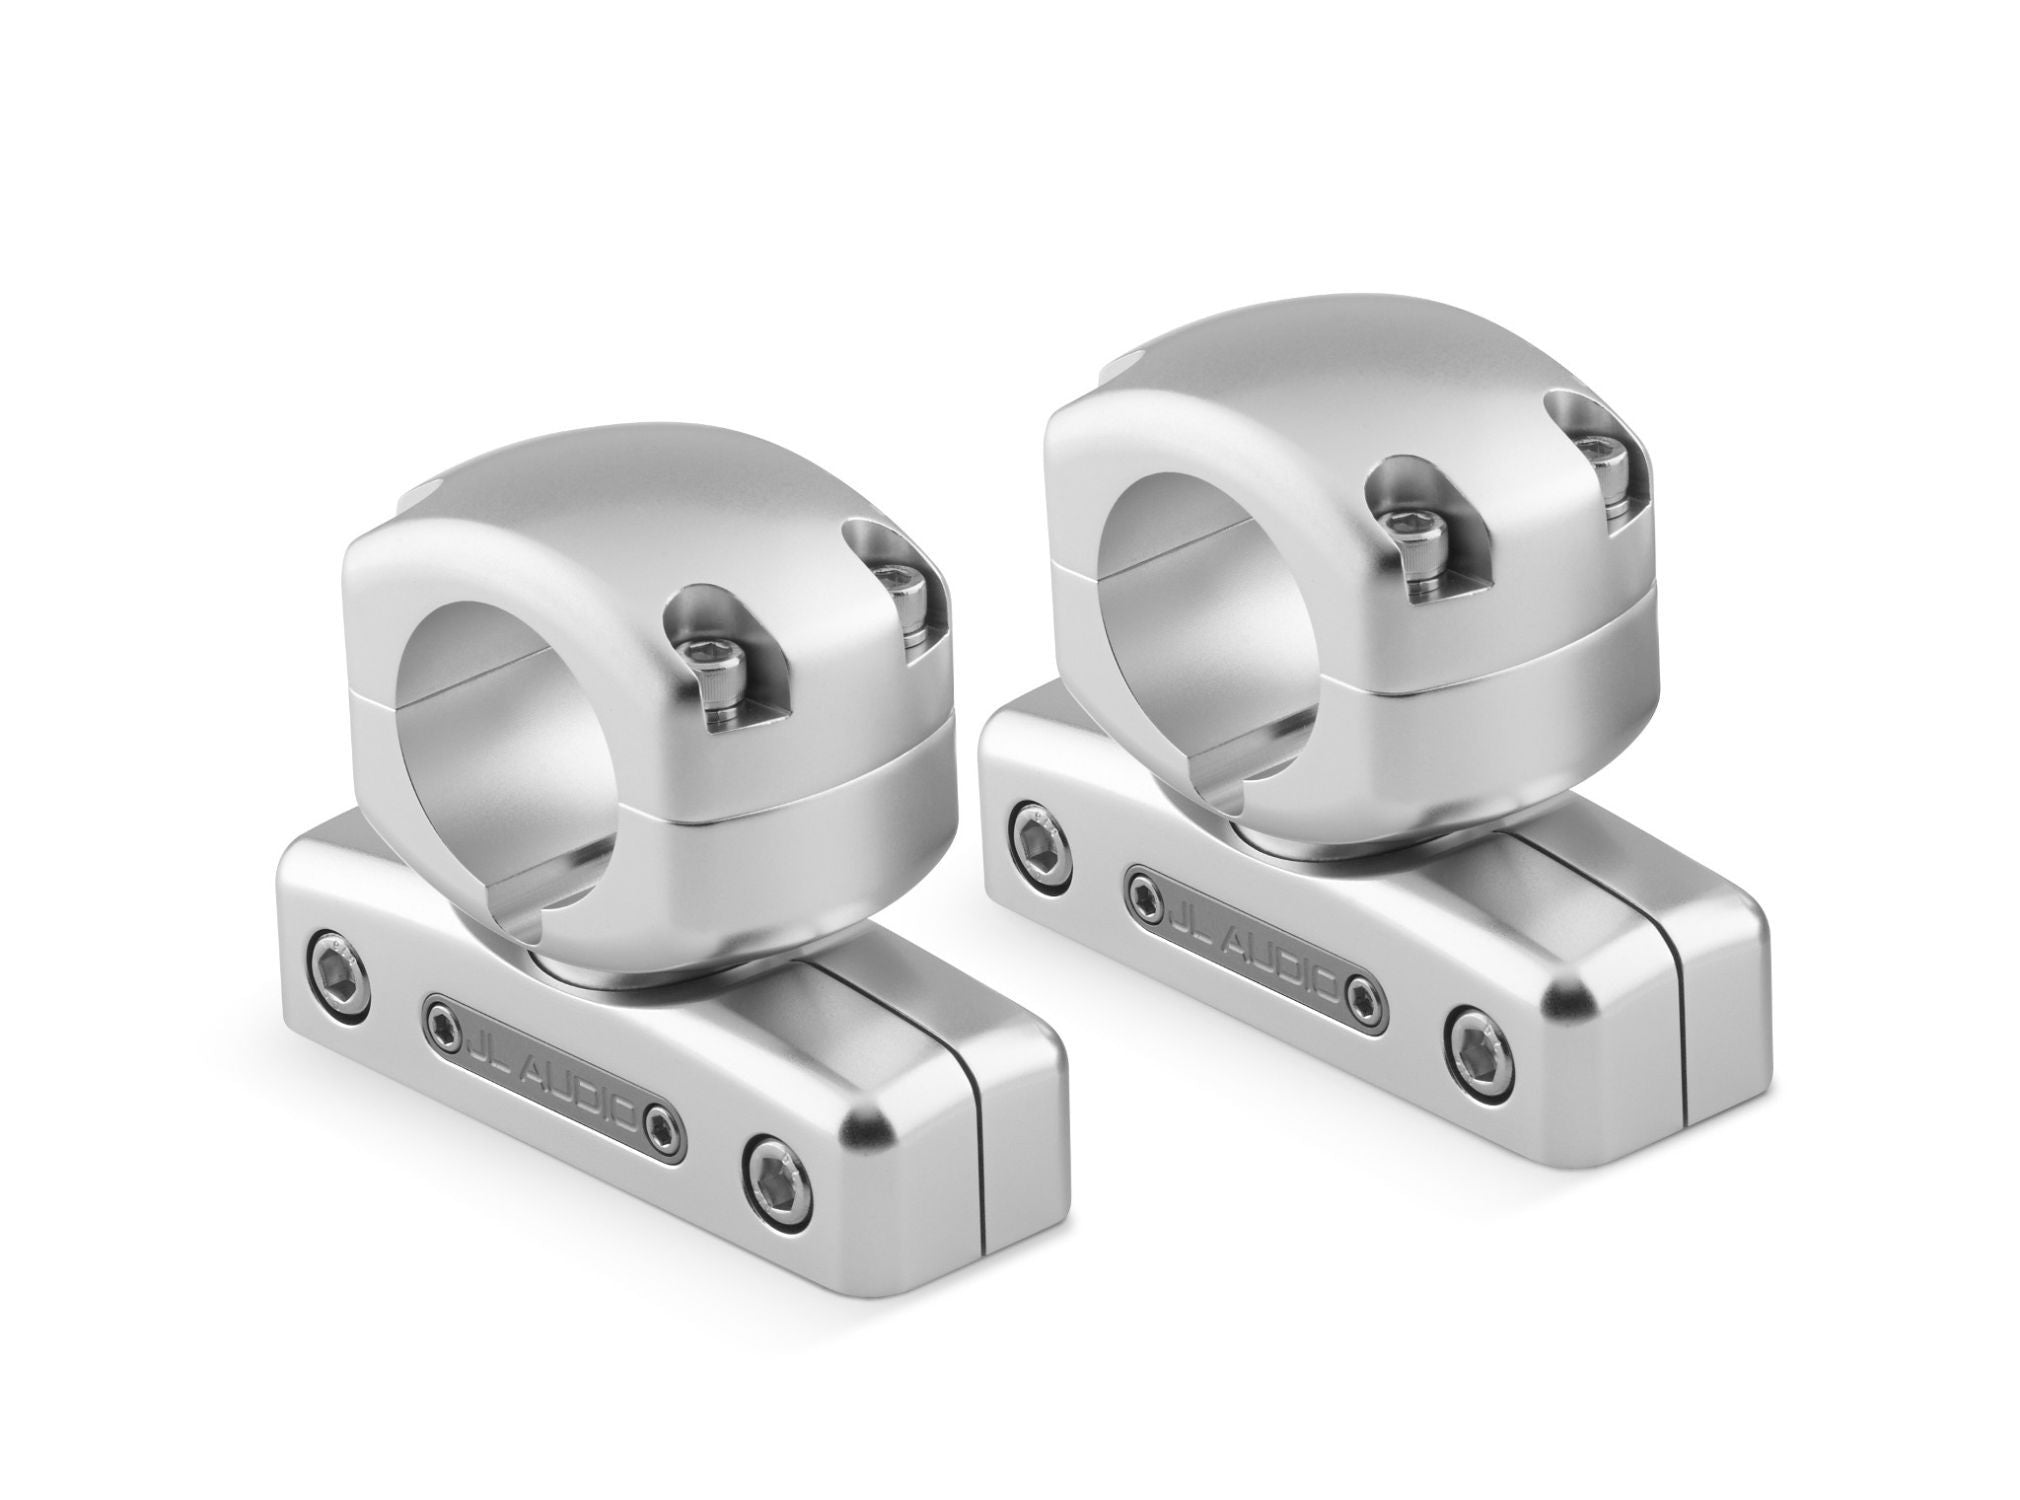 M-SWMCPv3-1-660 Swivel Mounting Clamp Pair